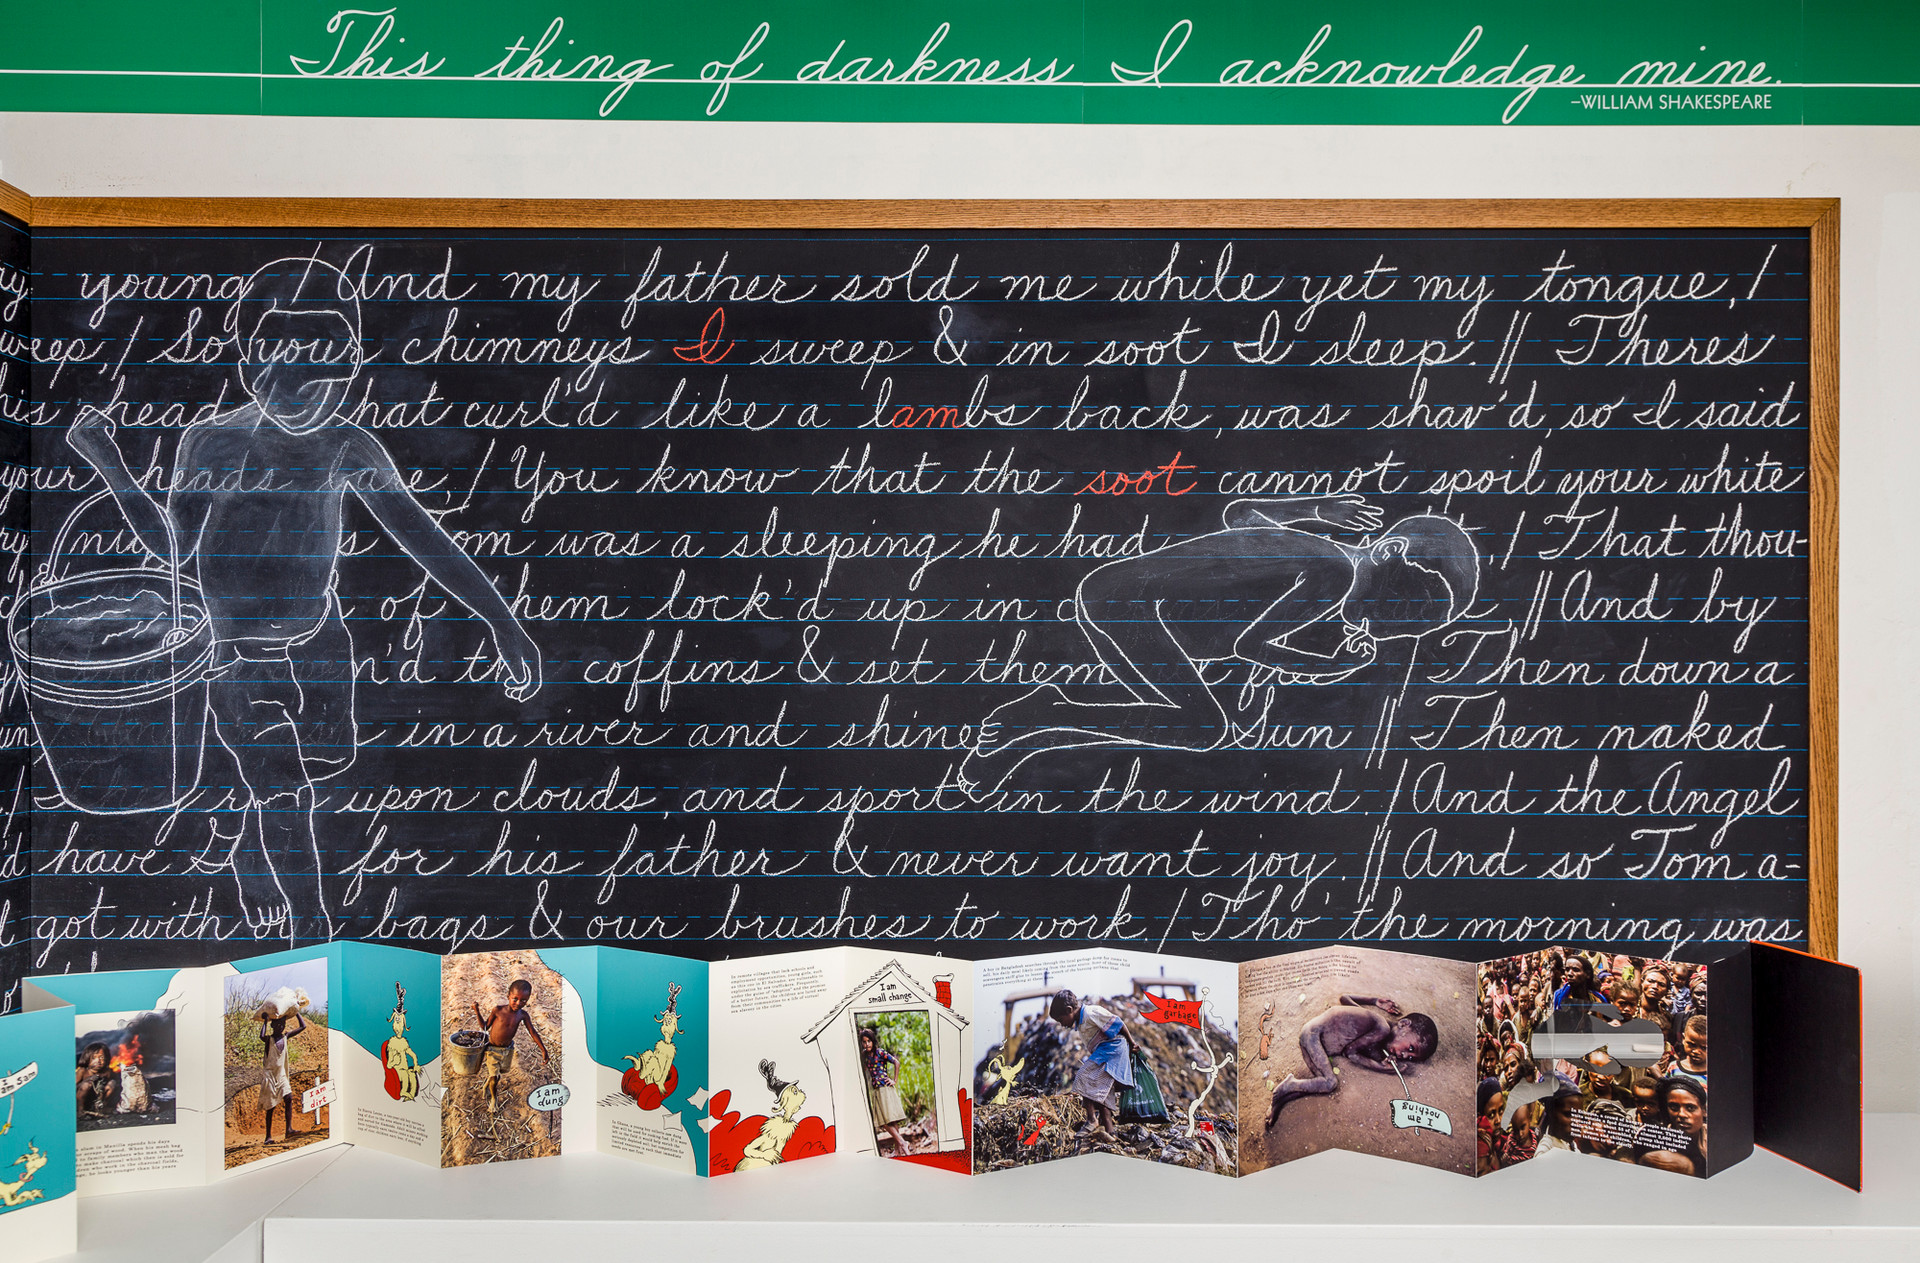 The green cursive script above the blackboard is a quote from Shakespeare's The Tempest, specifically words spoken by Prospero to acknowledge Caliban as his slave. In the context of the tableau, however, the phrase is used in a more metaphorical sense as it relates to the light and dark aspects of human nature as well as racial differences. In Blake's poem the polarity of black and white/good and evil is also a strong theme.